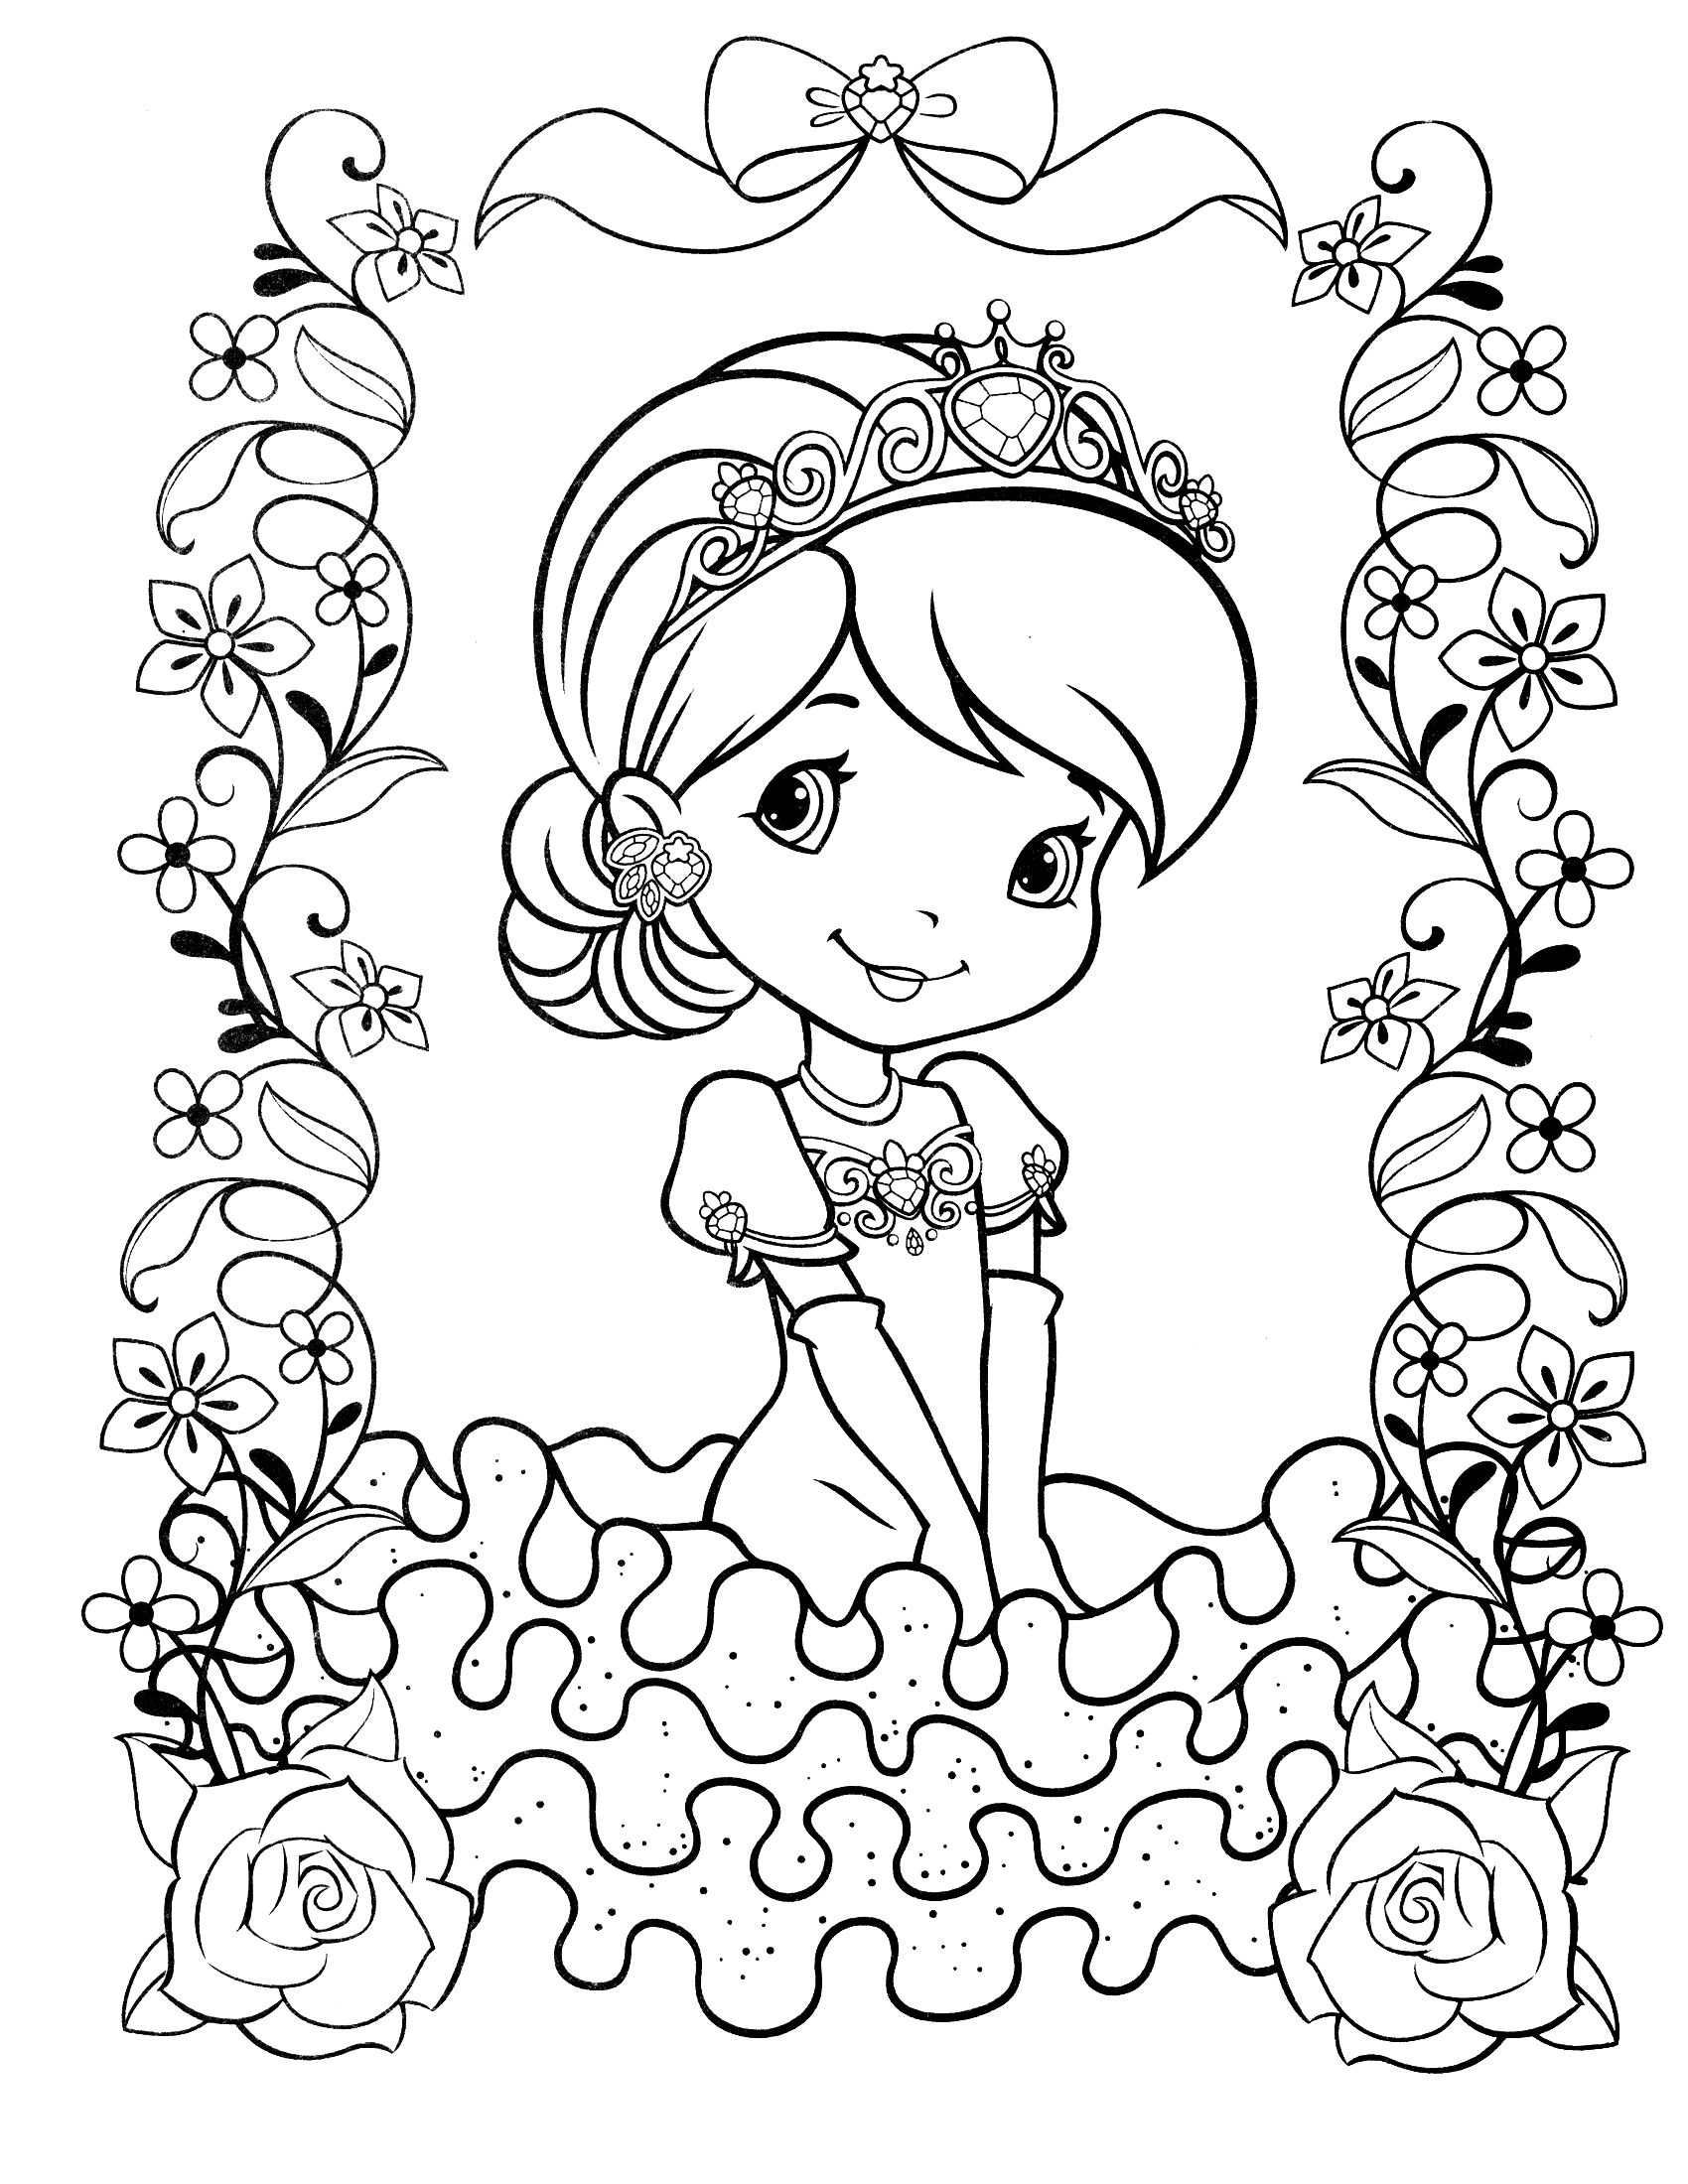 strawberry shortcake coloring pages for kids strawberry shortcake strawberry shortcake coloring pages kids shortcake pages coloring for strawberry